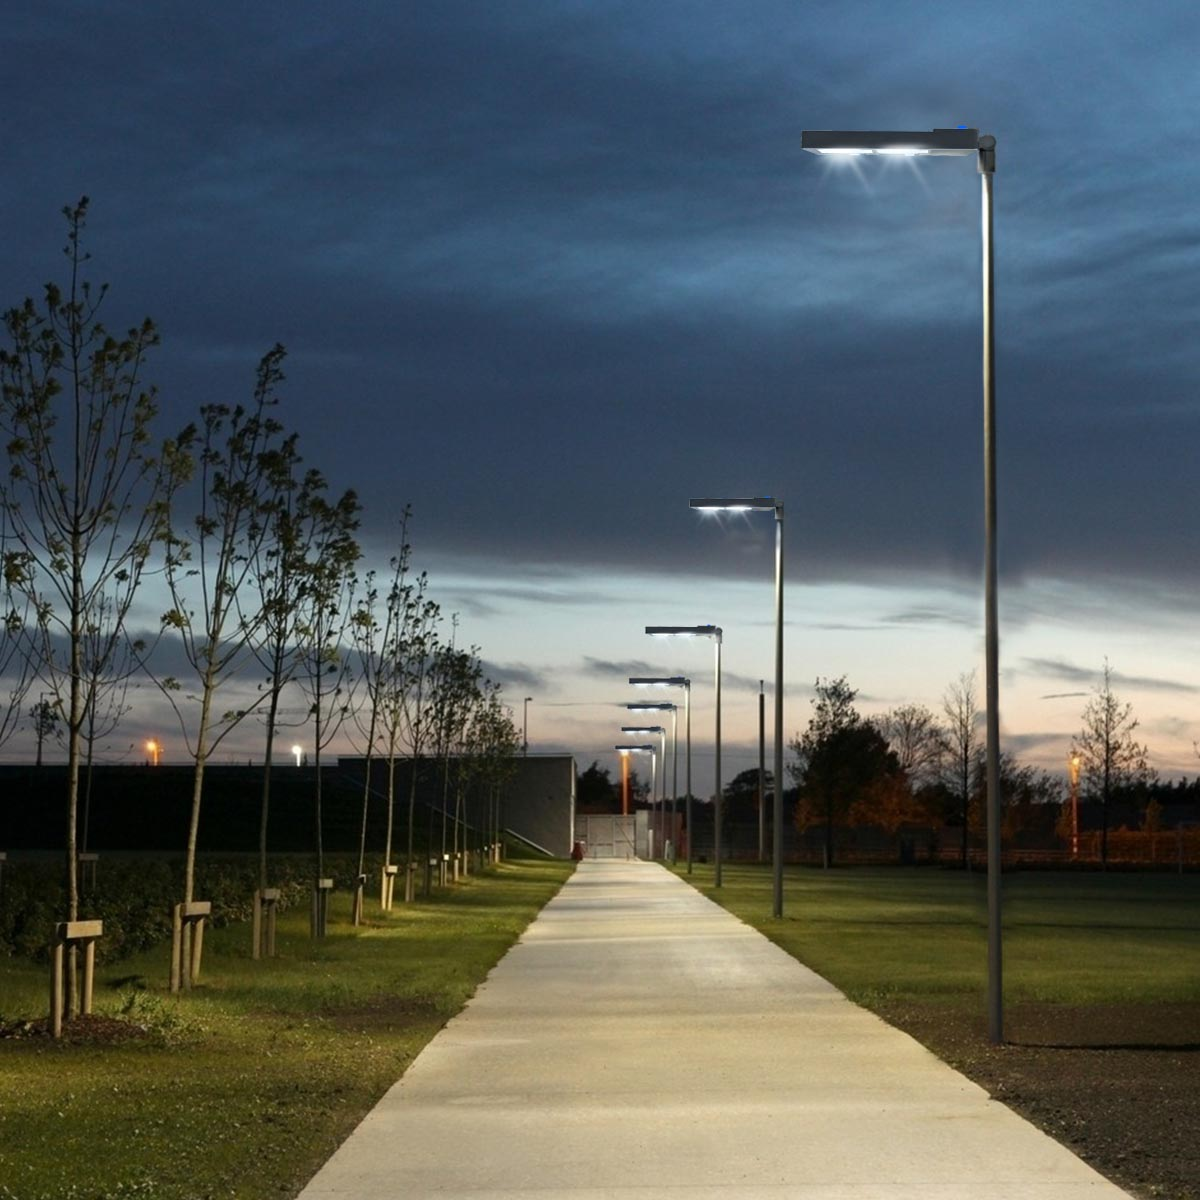 KAWELL LED Shoebox Pole Light 300W 33000 Lumen Super Efficiency 150 Lumen to Watt 5000K Bright White Replaces 900W Halide Led Parking Lot Lights Street Light FREE Dusk to Dawn Photocell Sensor light